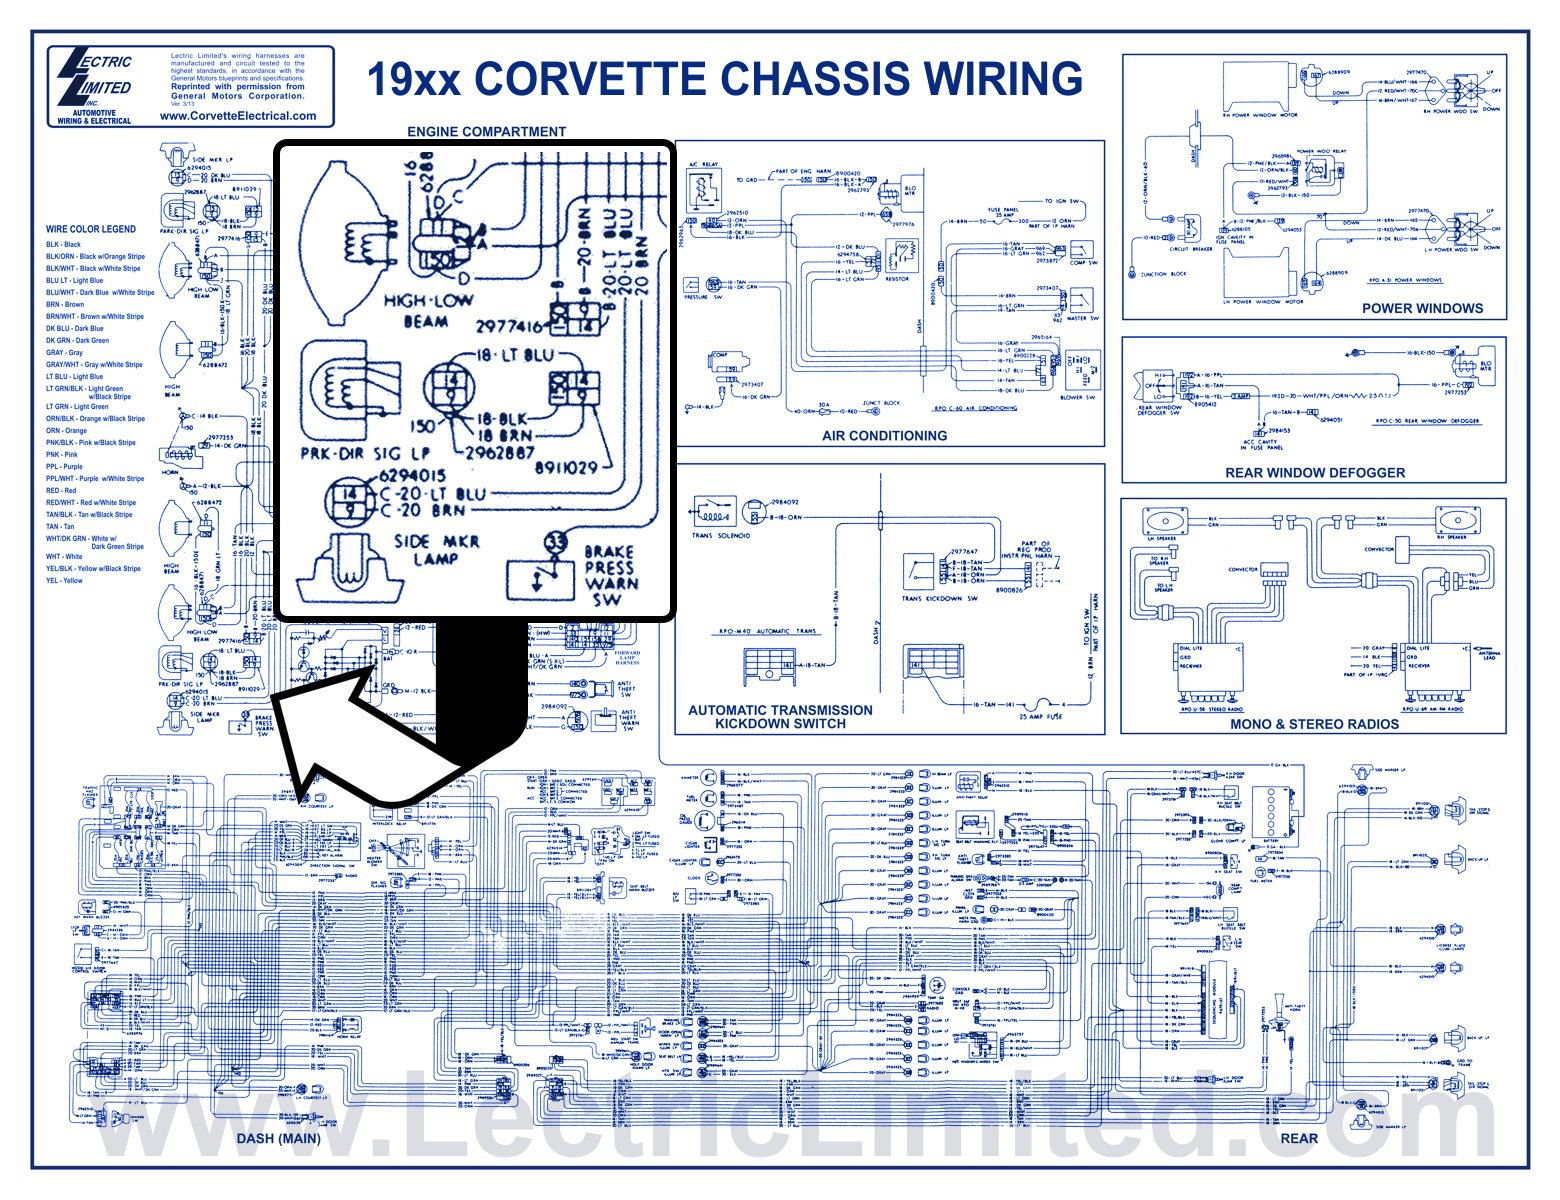 corvette wiring diagram miscellaneous products corvette camaro chevelle wiring diagram